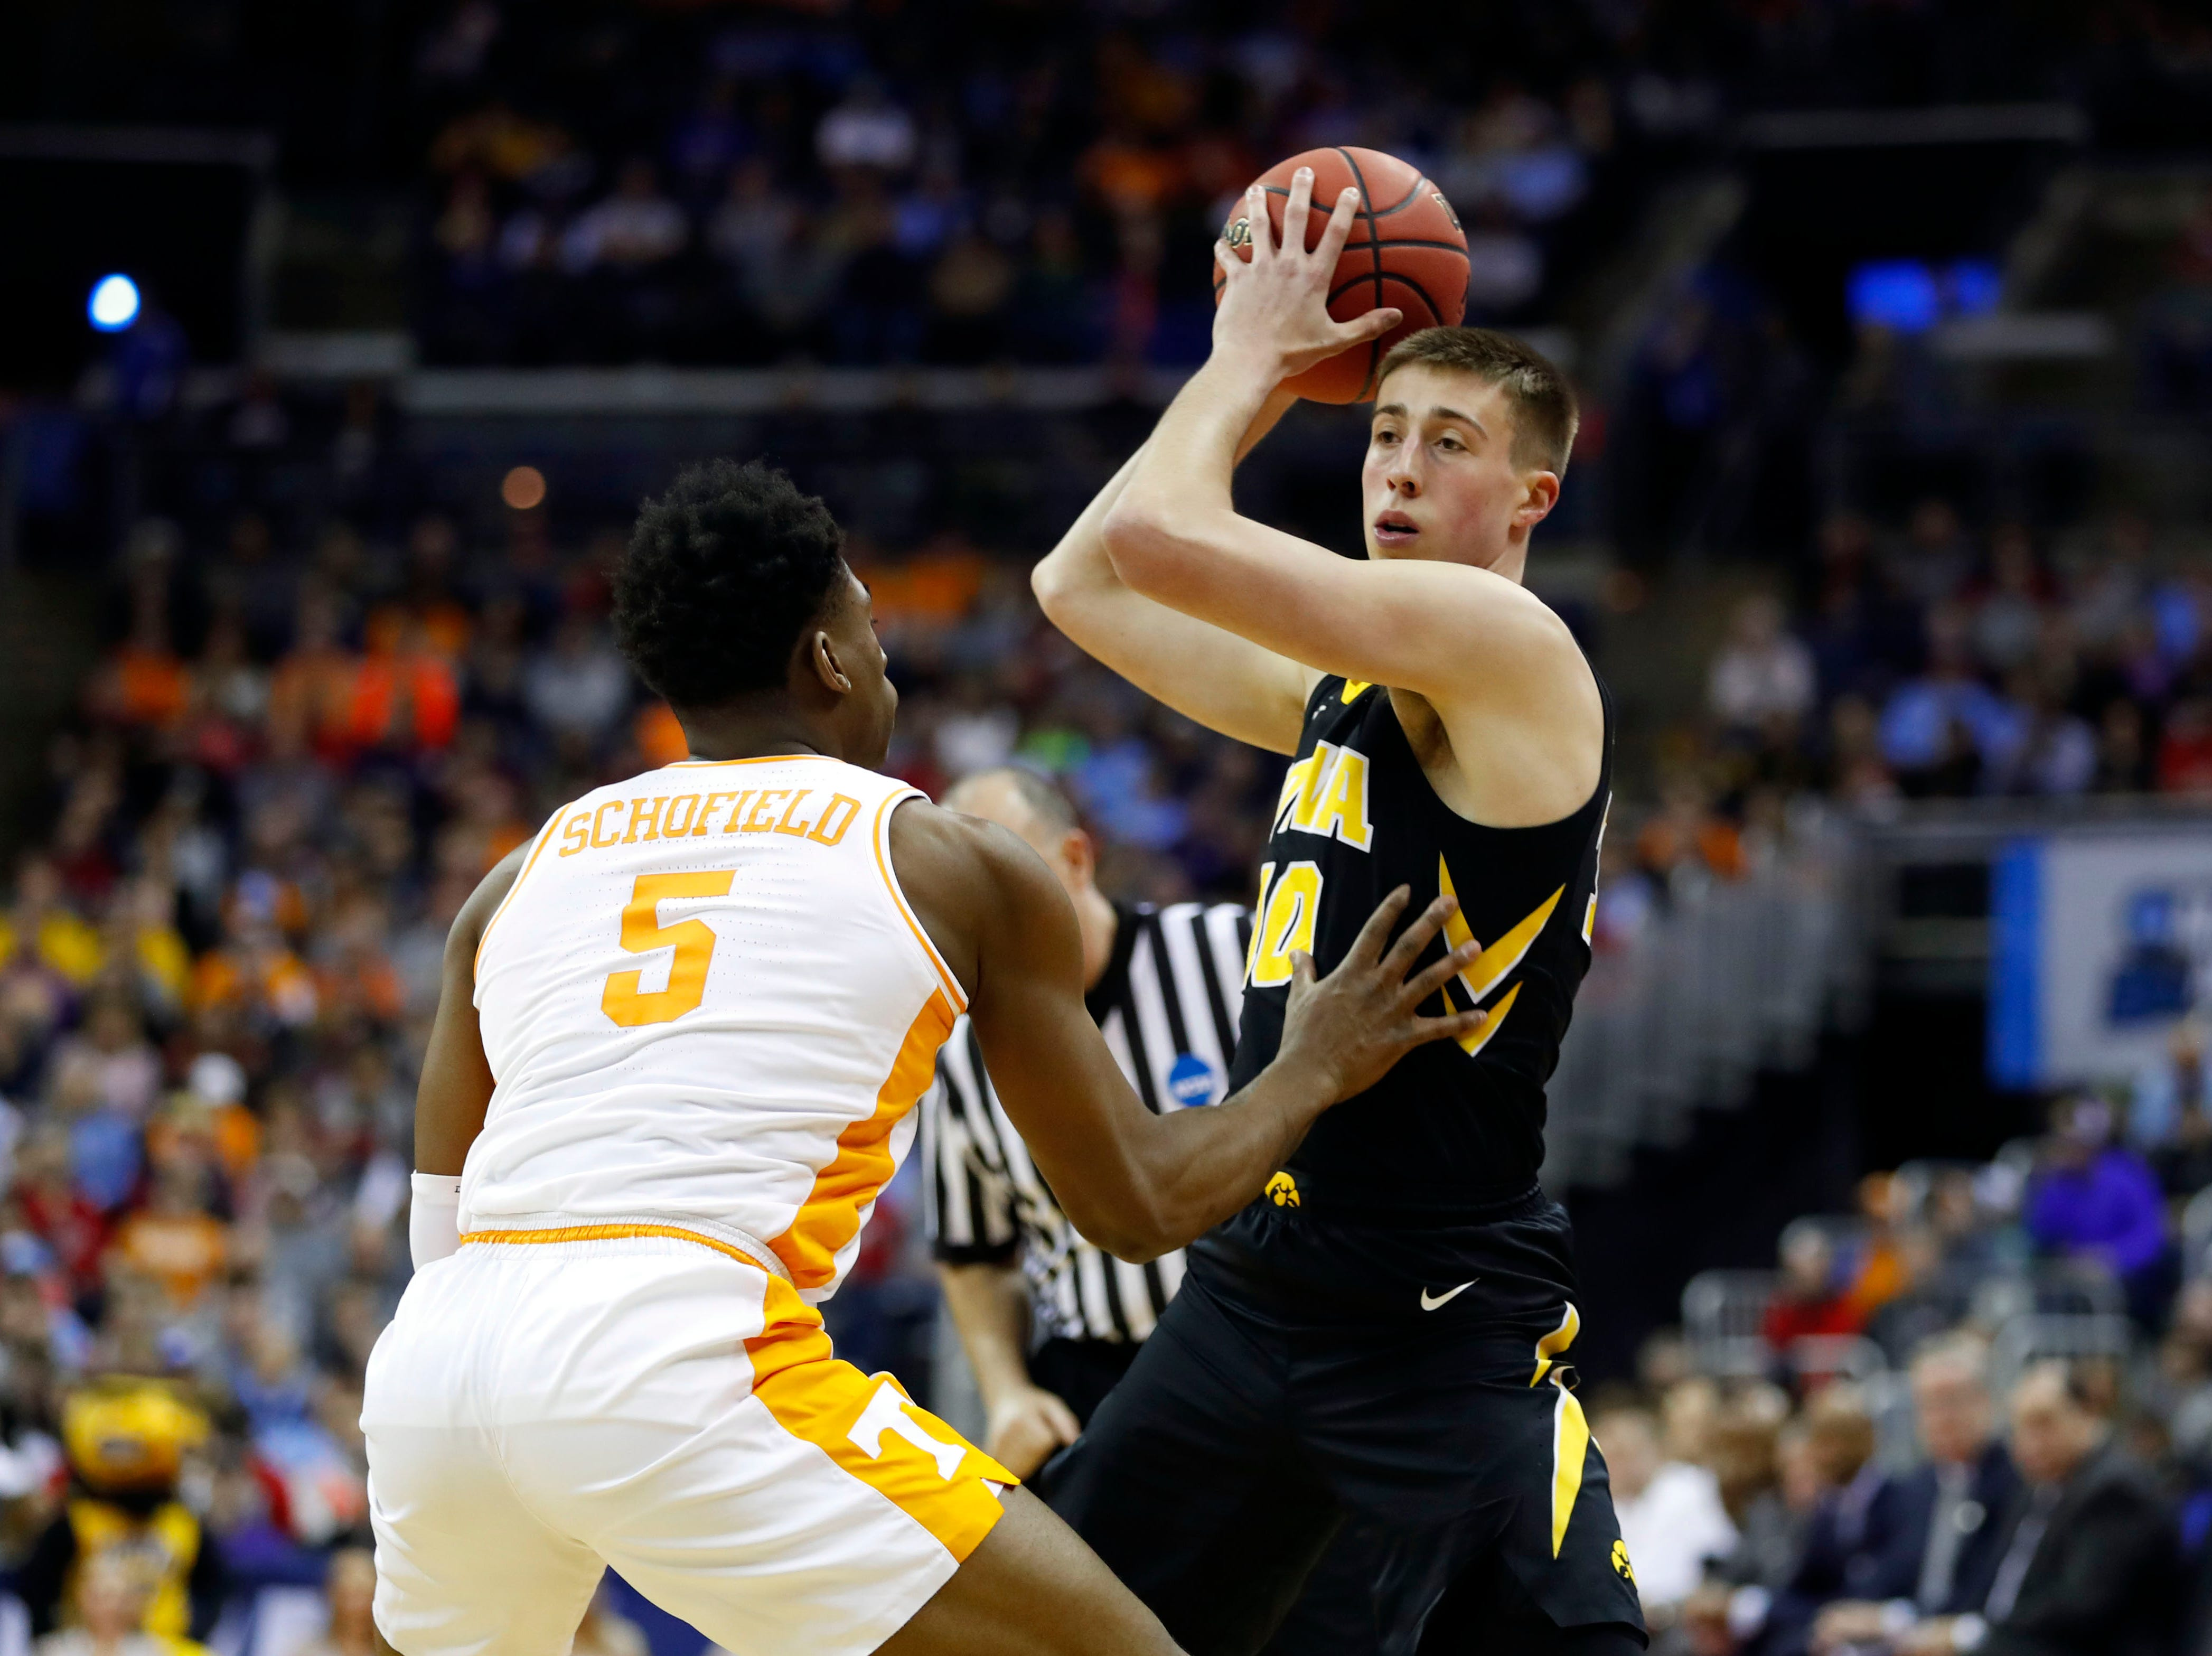 Iowa Hawkeyes guard Joe Wieskamp (10) looks to move the ball defended by Tennessee Volunteers guard Admiral Schofield (5) in the first half in the second round of the 2019 NCAA Tournament at Nationwide Arena.